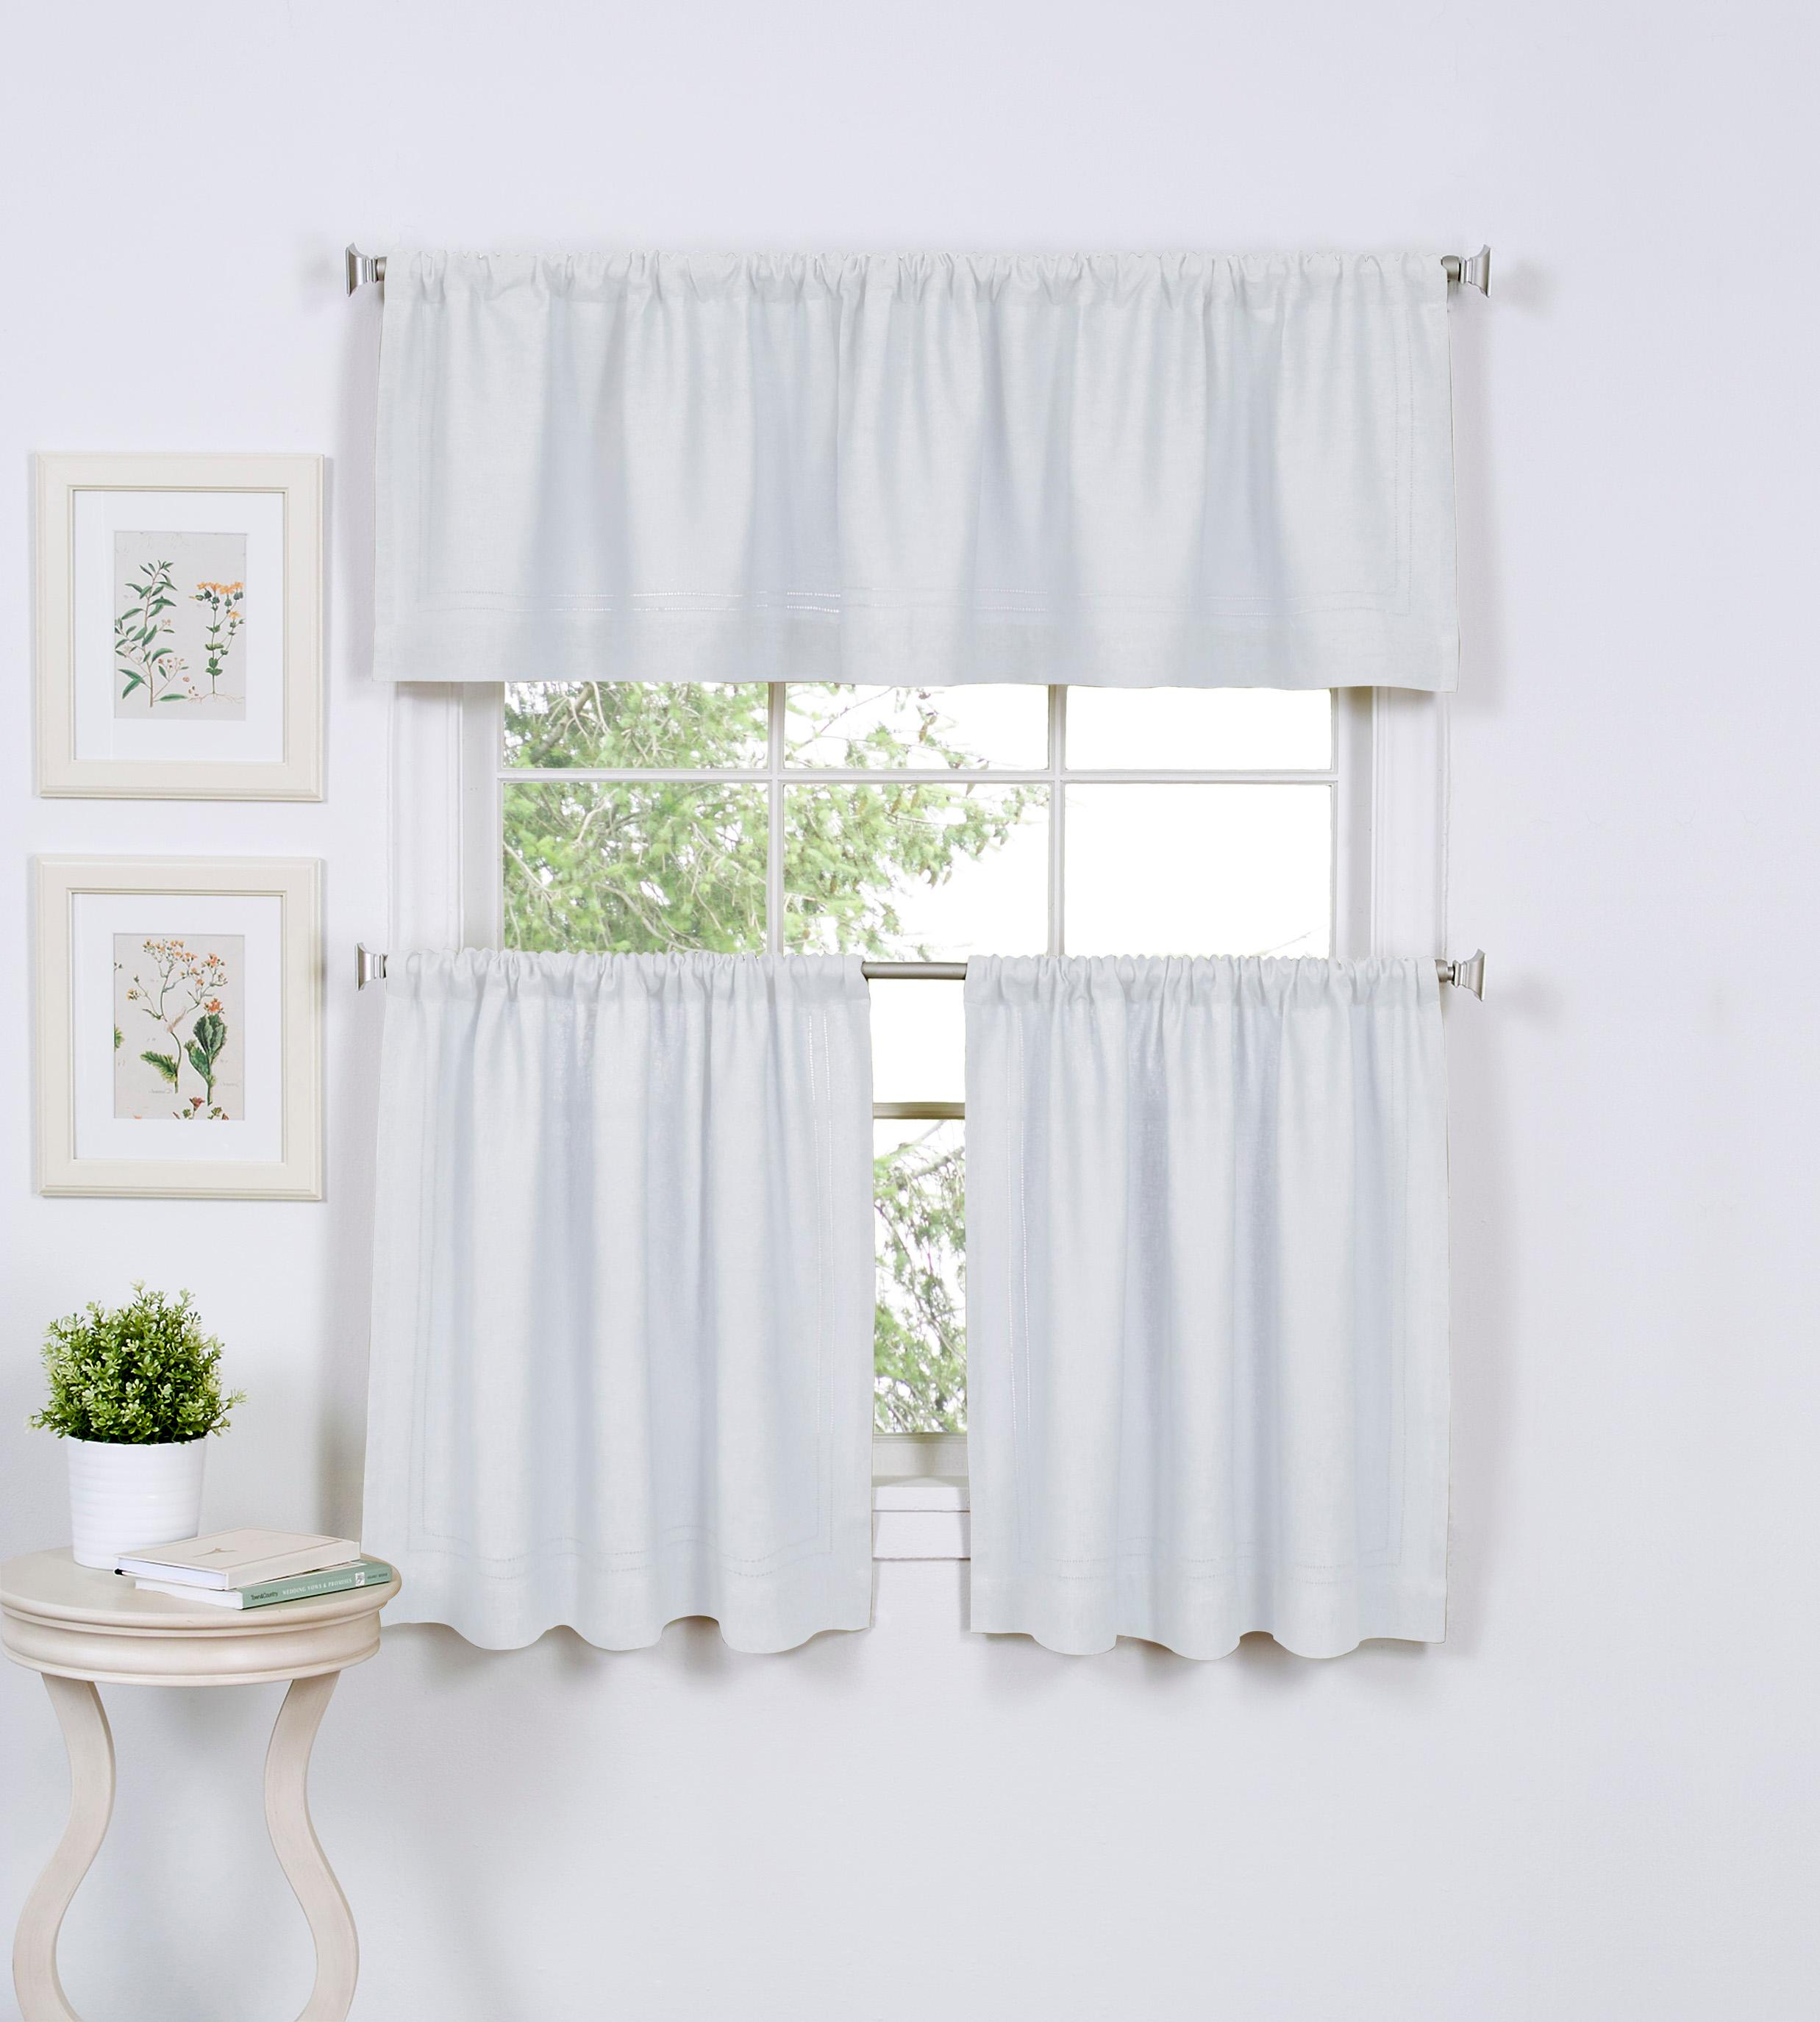 Elrene Home Fashions Cafe Kitchen Curtain Tier Valance